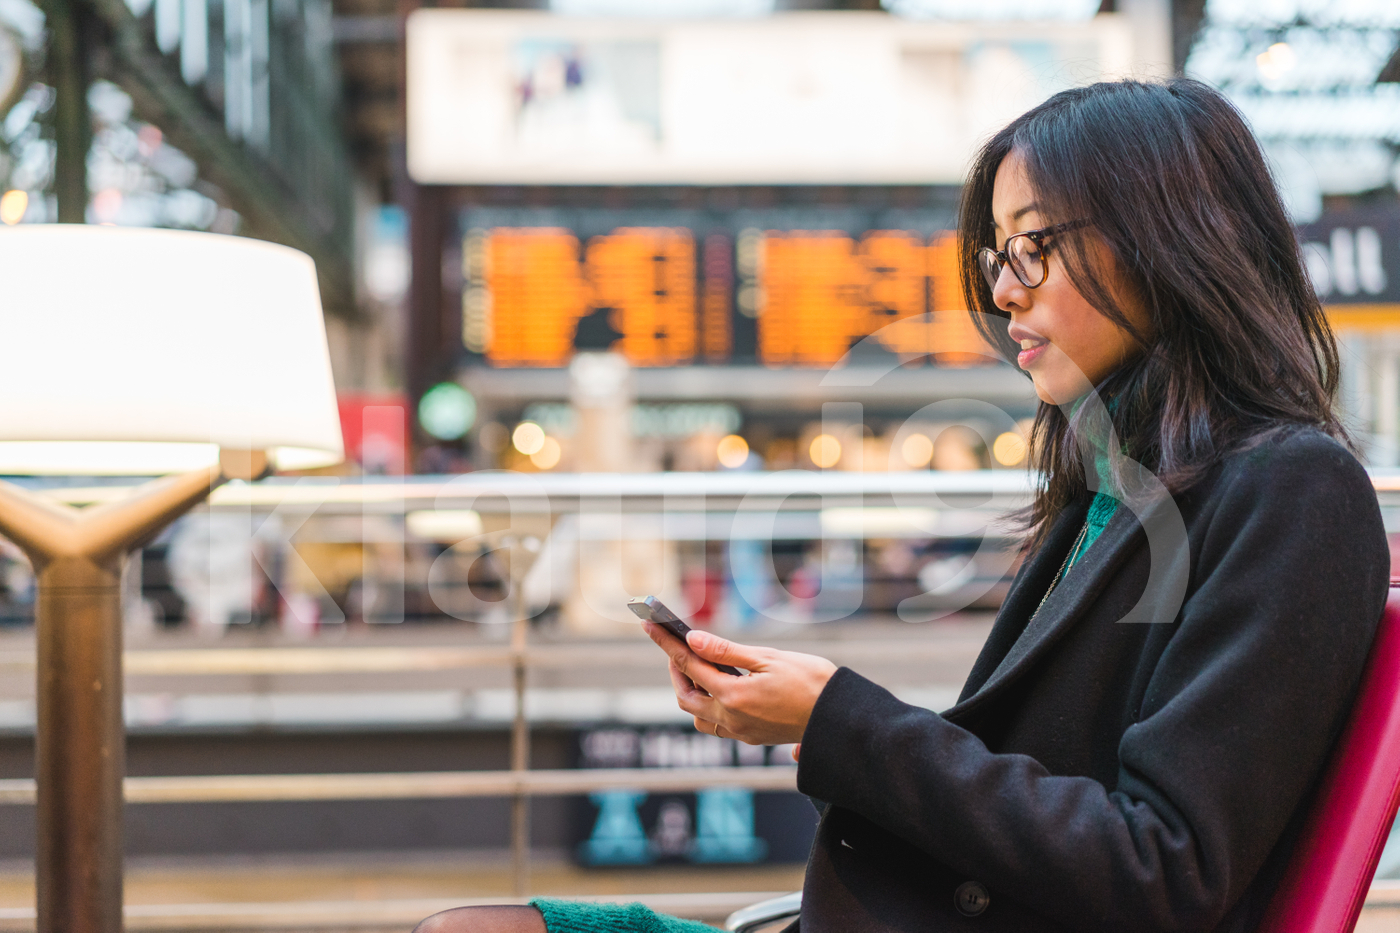 Young adult Asian woman looking at her mobile in a train station